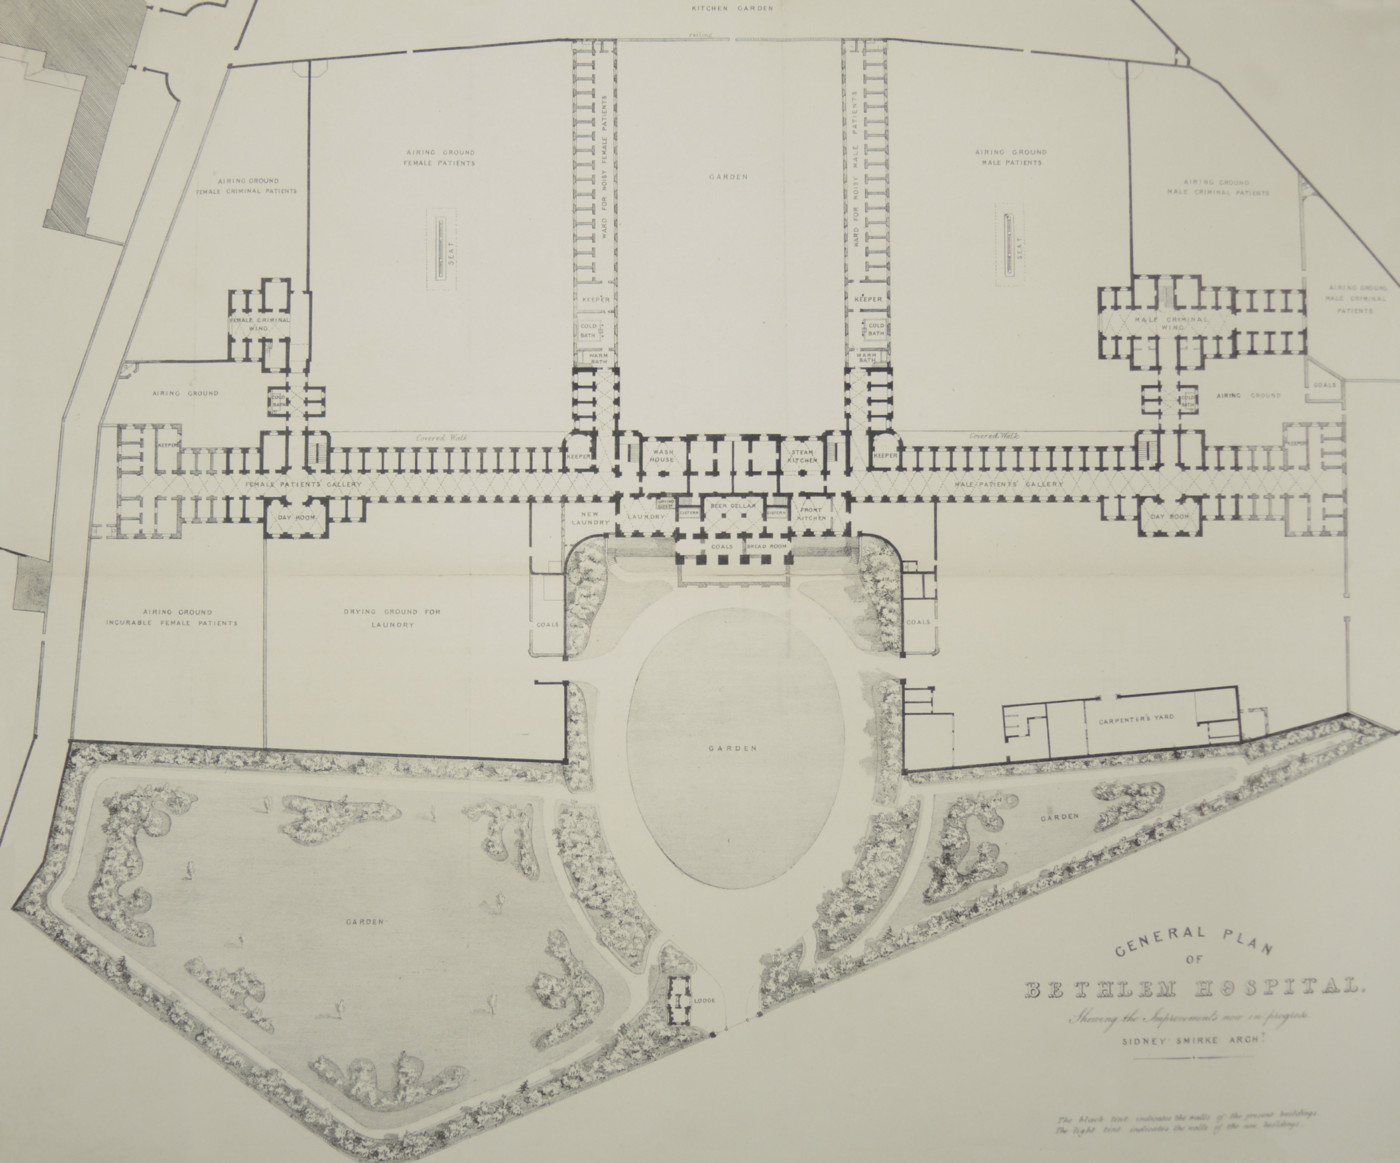 Plan of Bethlem in the late nineteenth century